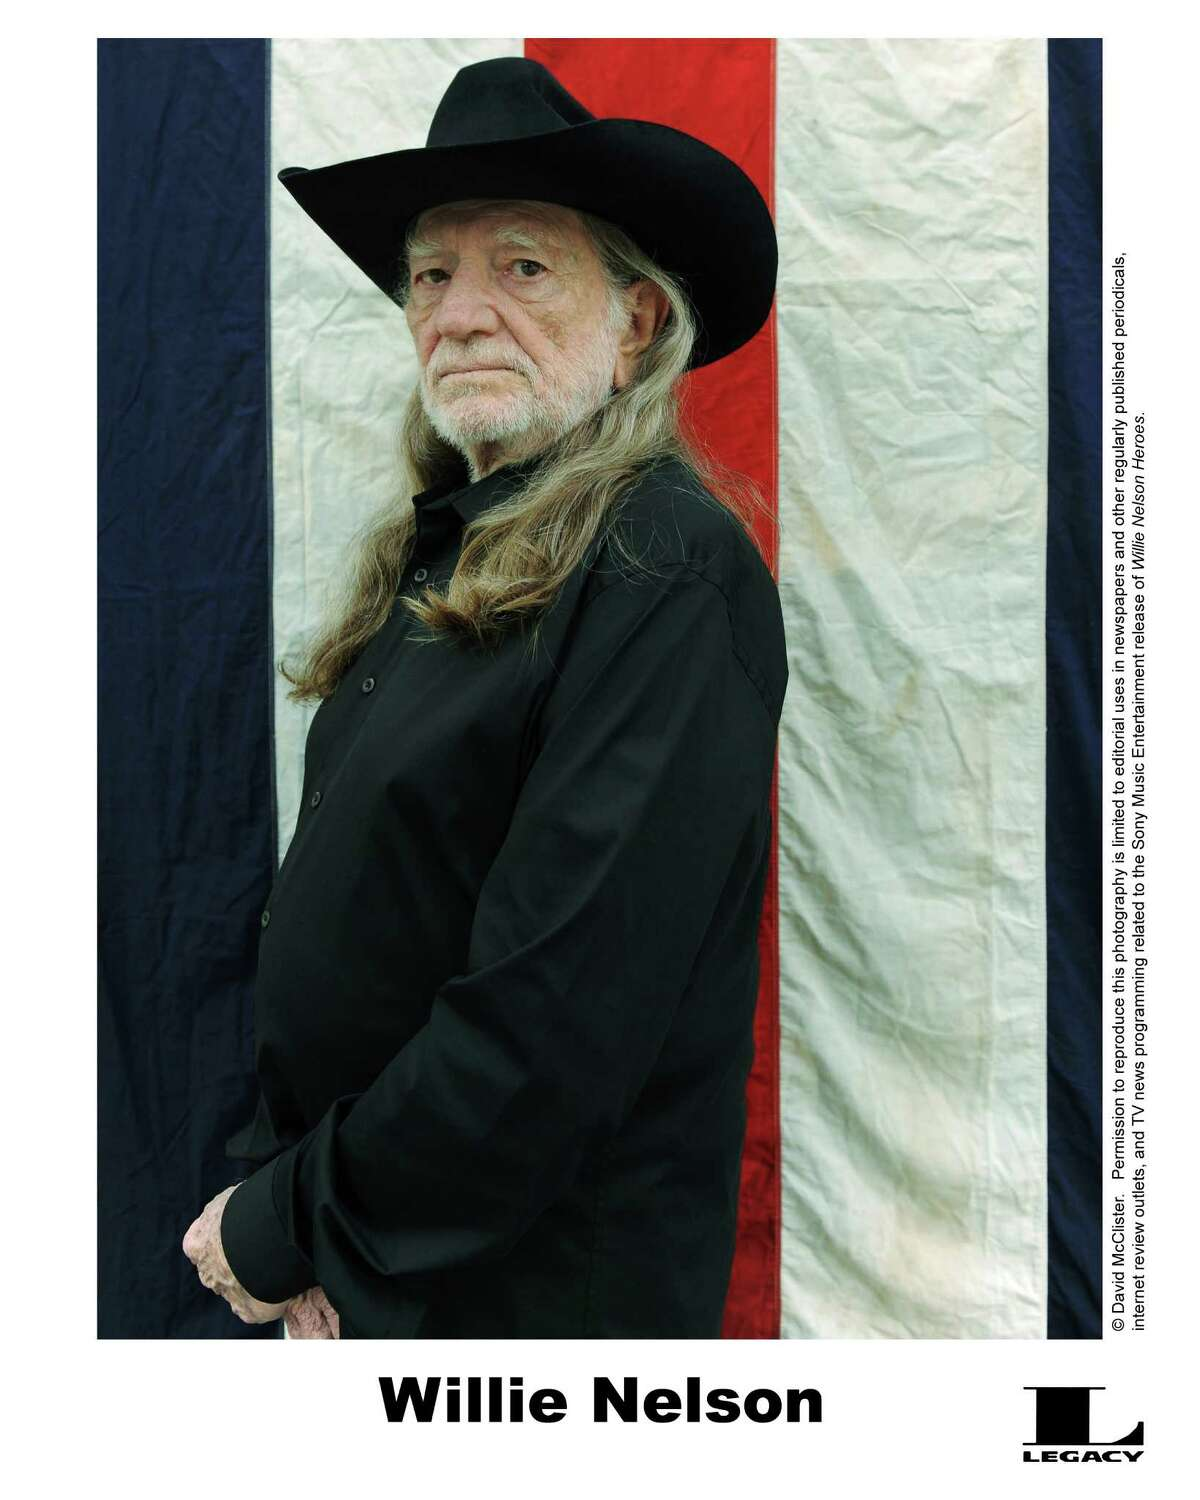 Willie Nelson, a native son of Central Texas, found fame in Nashville before returning to the Lone Star State.